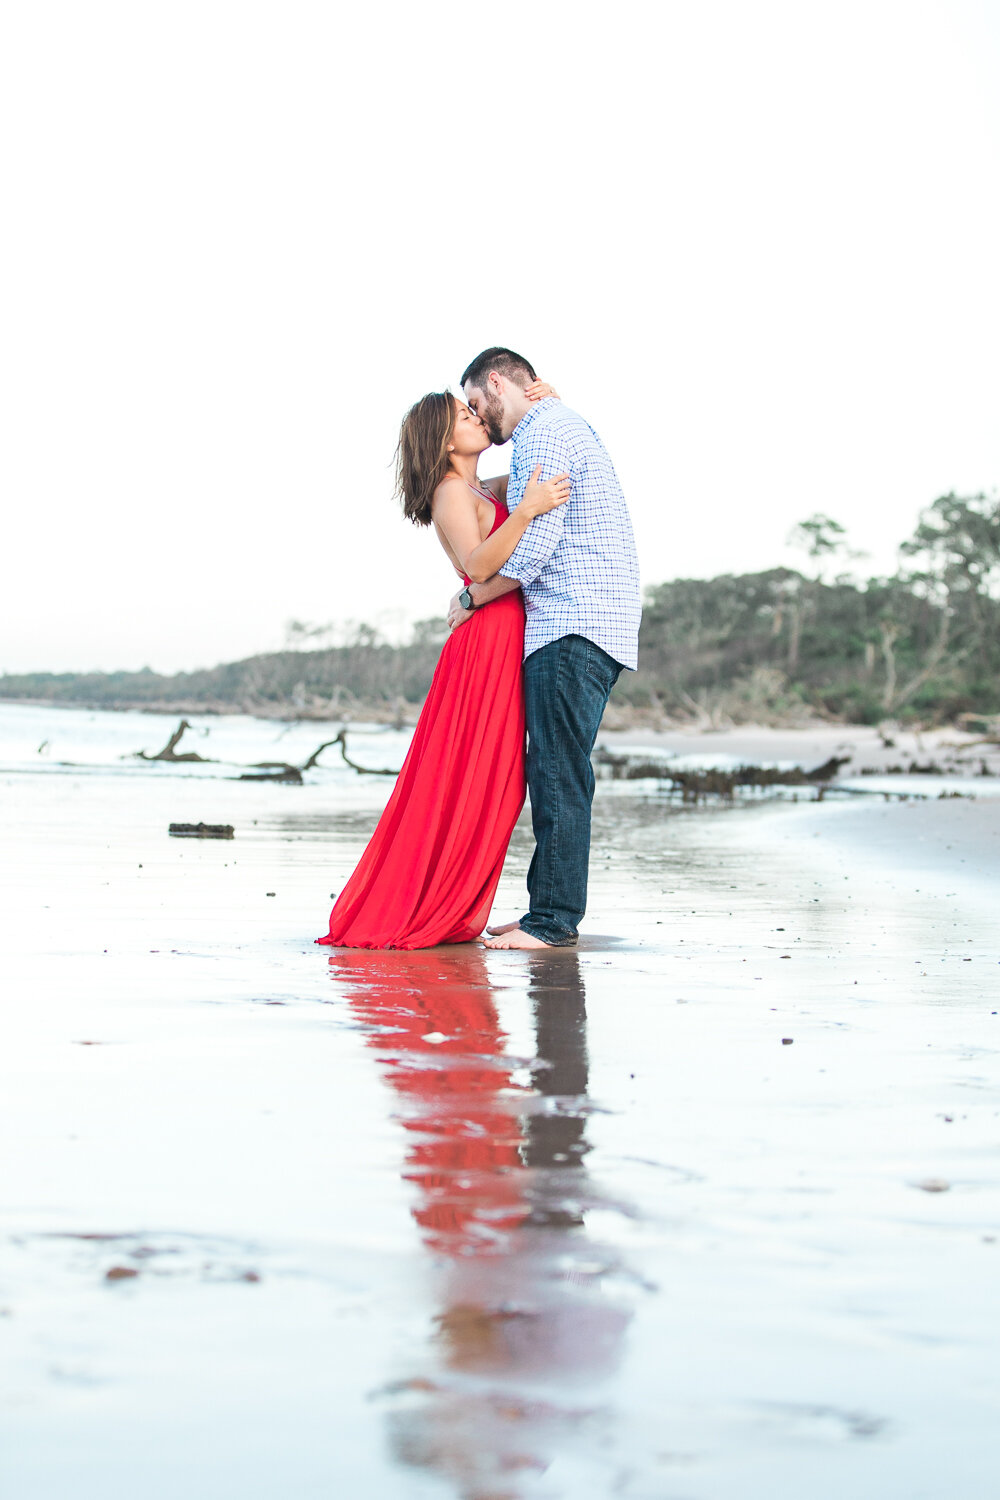 Big Talbot Island is one of the best photoshoot locations in Jacksonville area